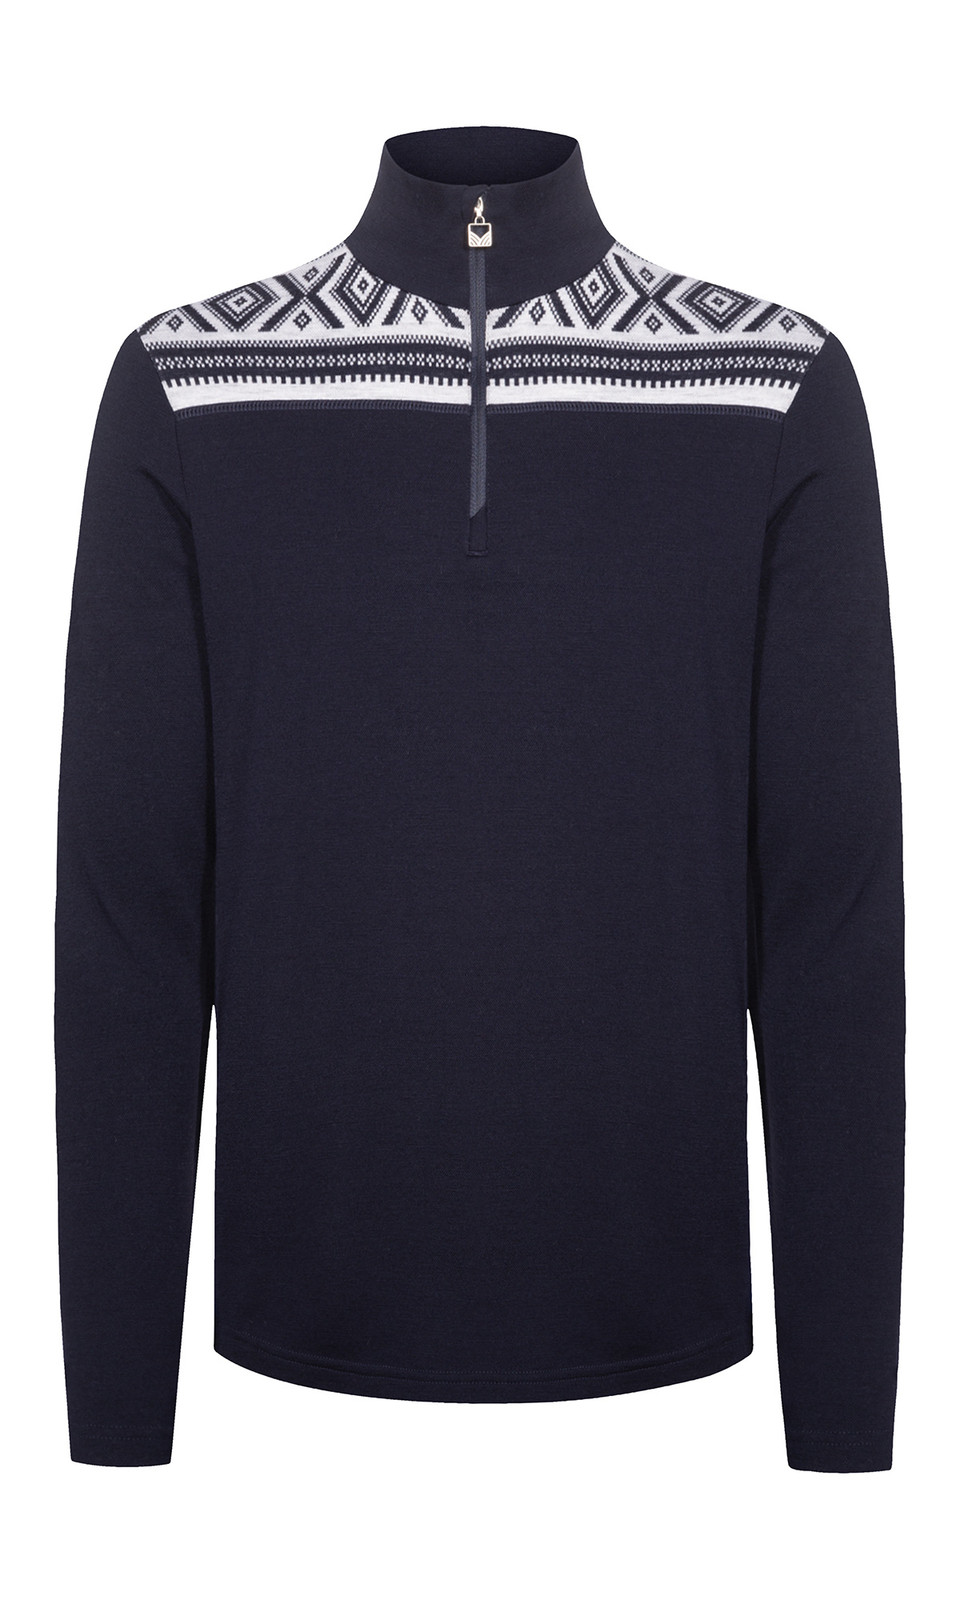 Dale of Norway Cortina Basic Men's Sweater (Base Layer), Navy/Off-White, 93531C